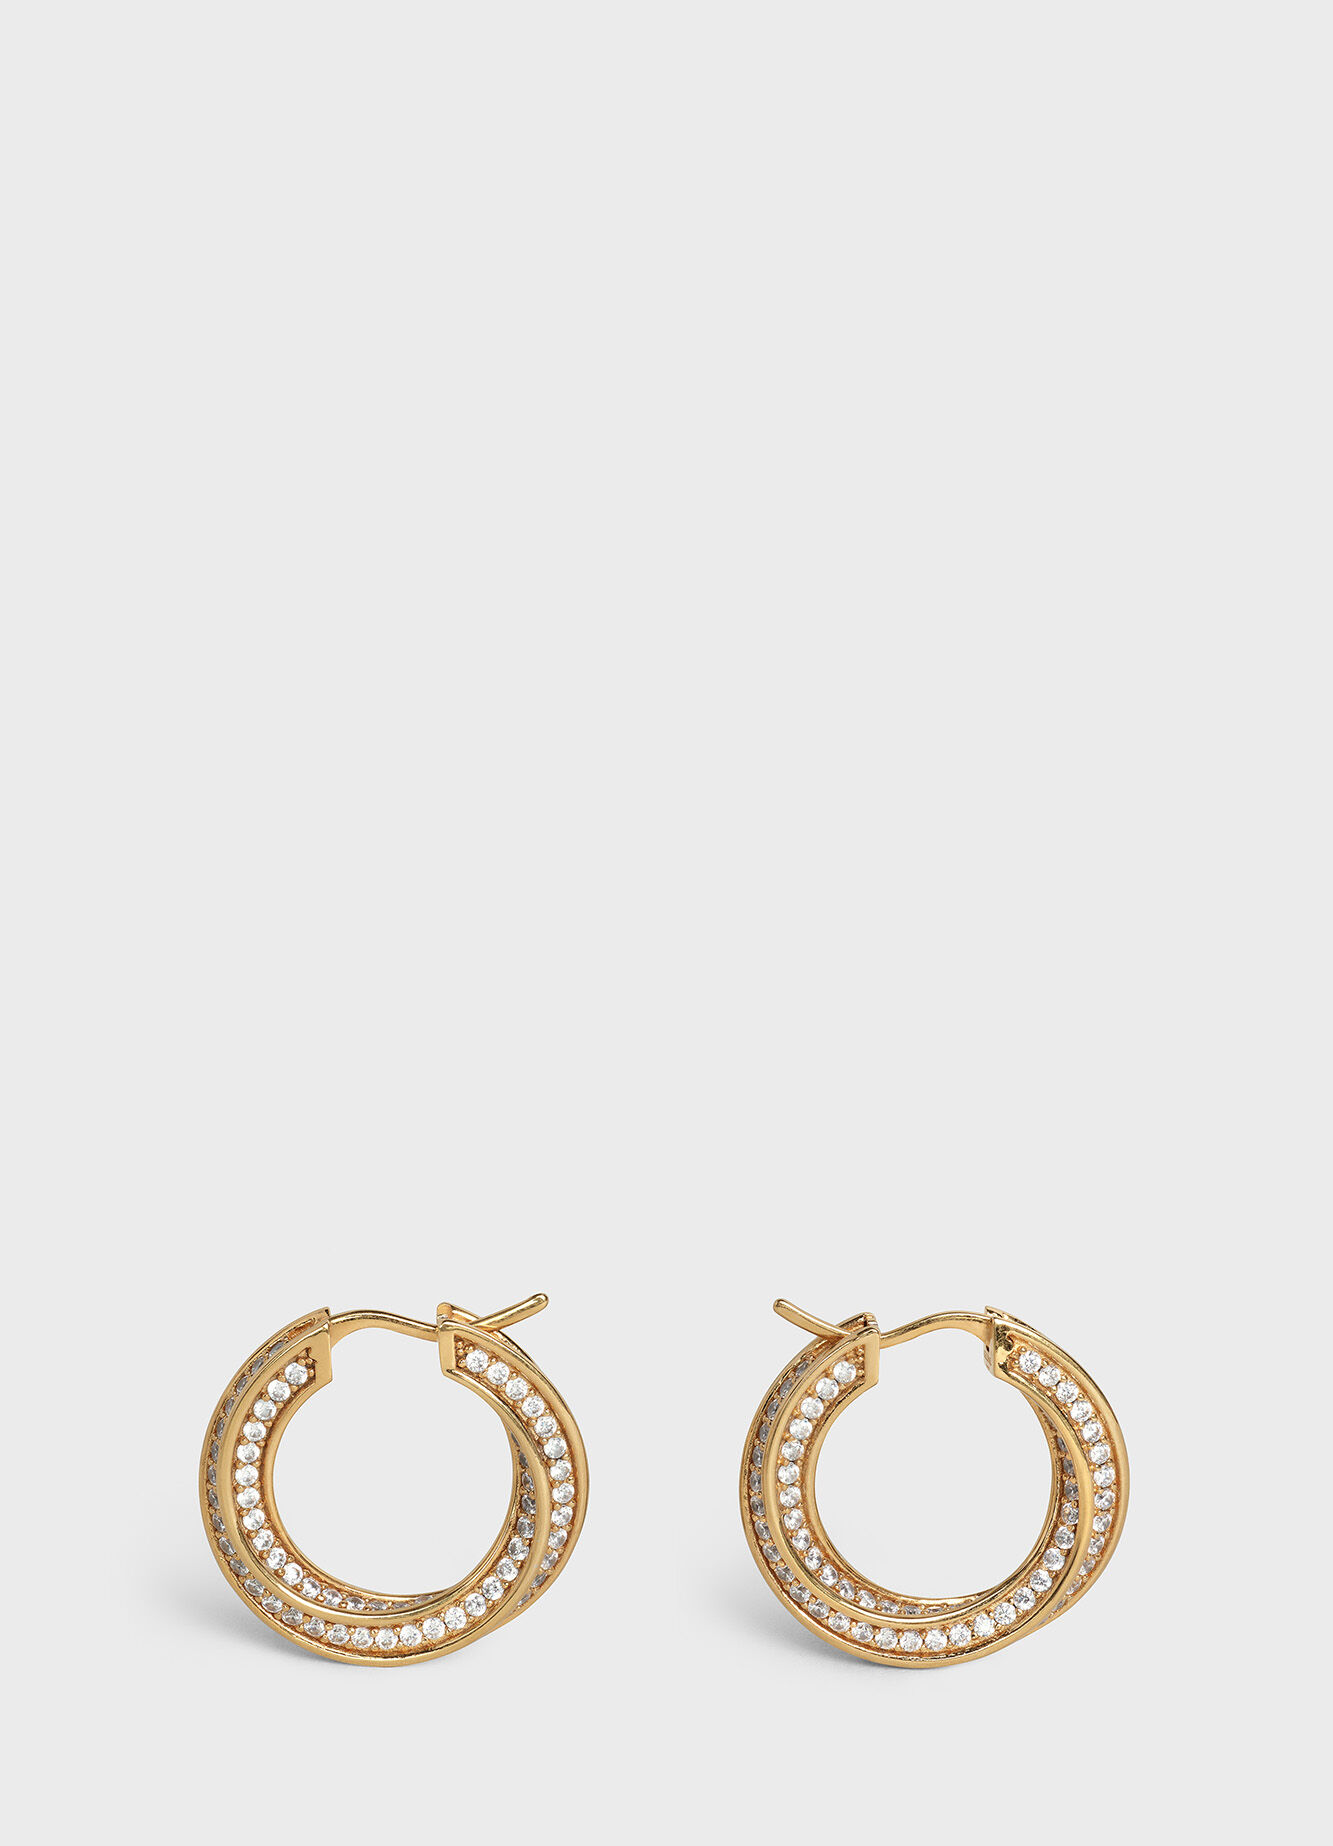 CELINE EDWIGE TWISTED HOOPS IN BRASS WITH GOLD FINISH AND CRYSTALS